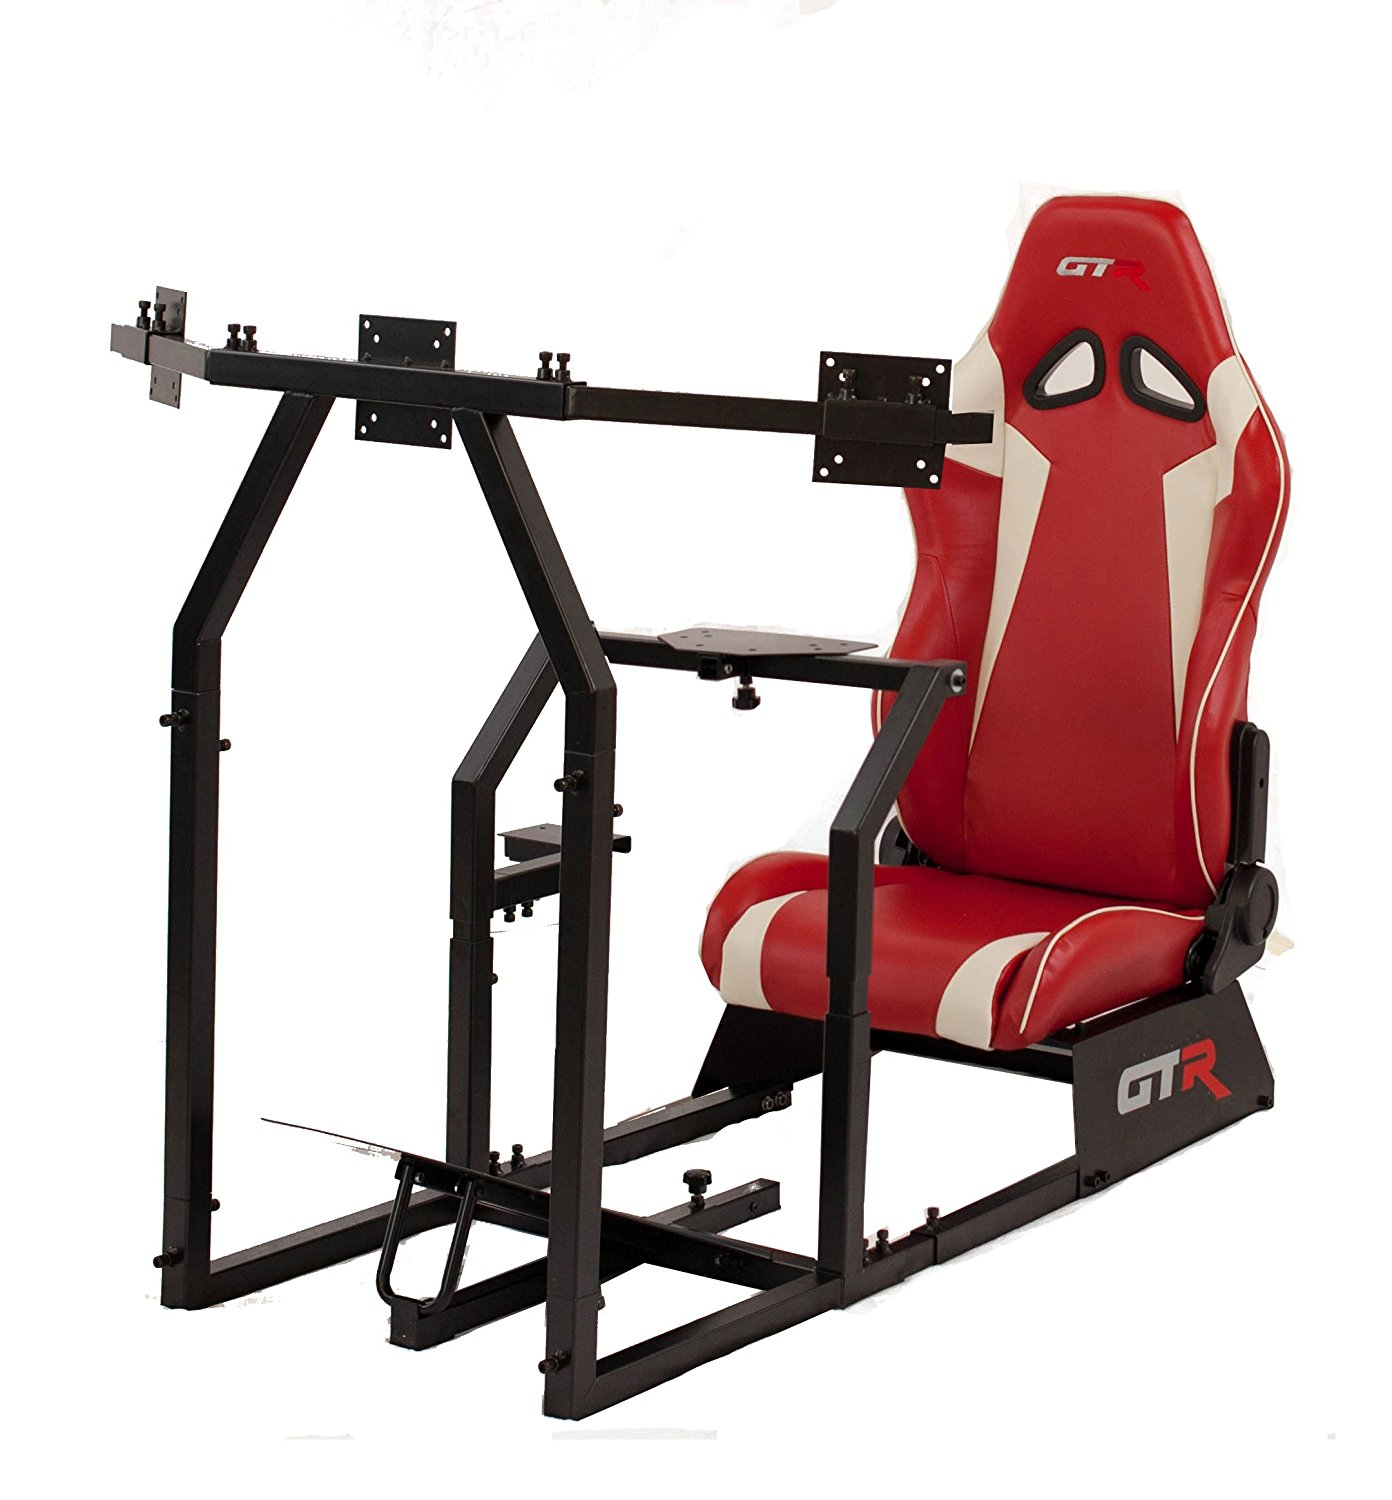 GTR Racing Simulator GTAF-BLK-S105LRDWHT - GTA-F Model (Black) Triple or Single Monitor Stand with Red/White Adjustable Leatherette Seat, Racing Simulator Cockpit gaming chair Single Monitor Stand